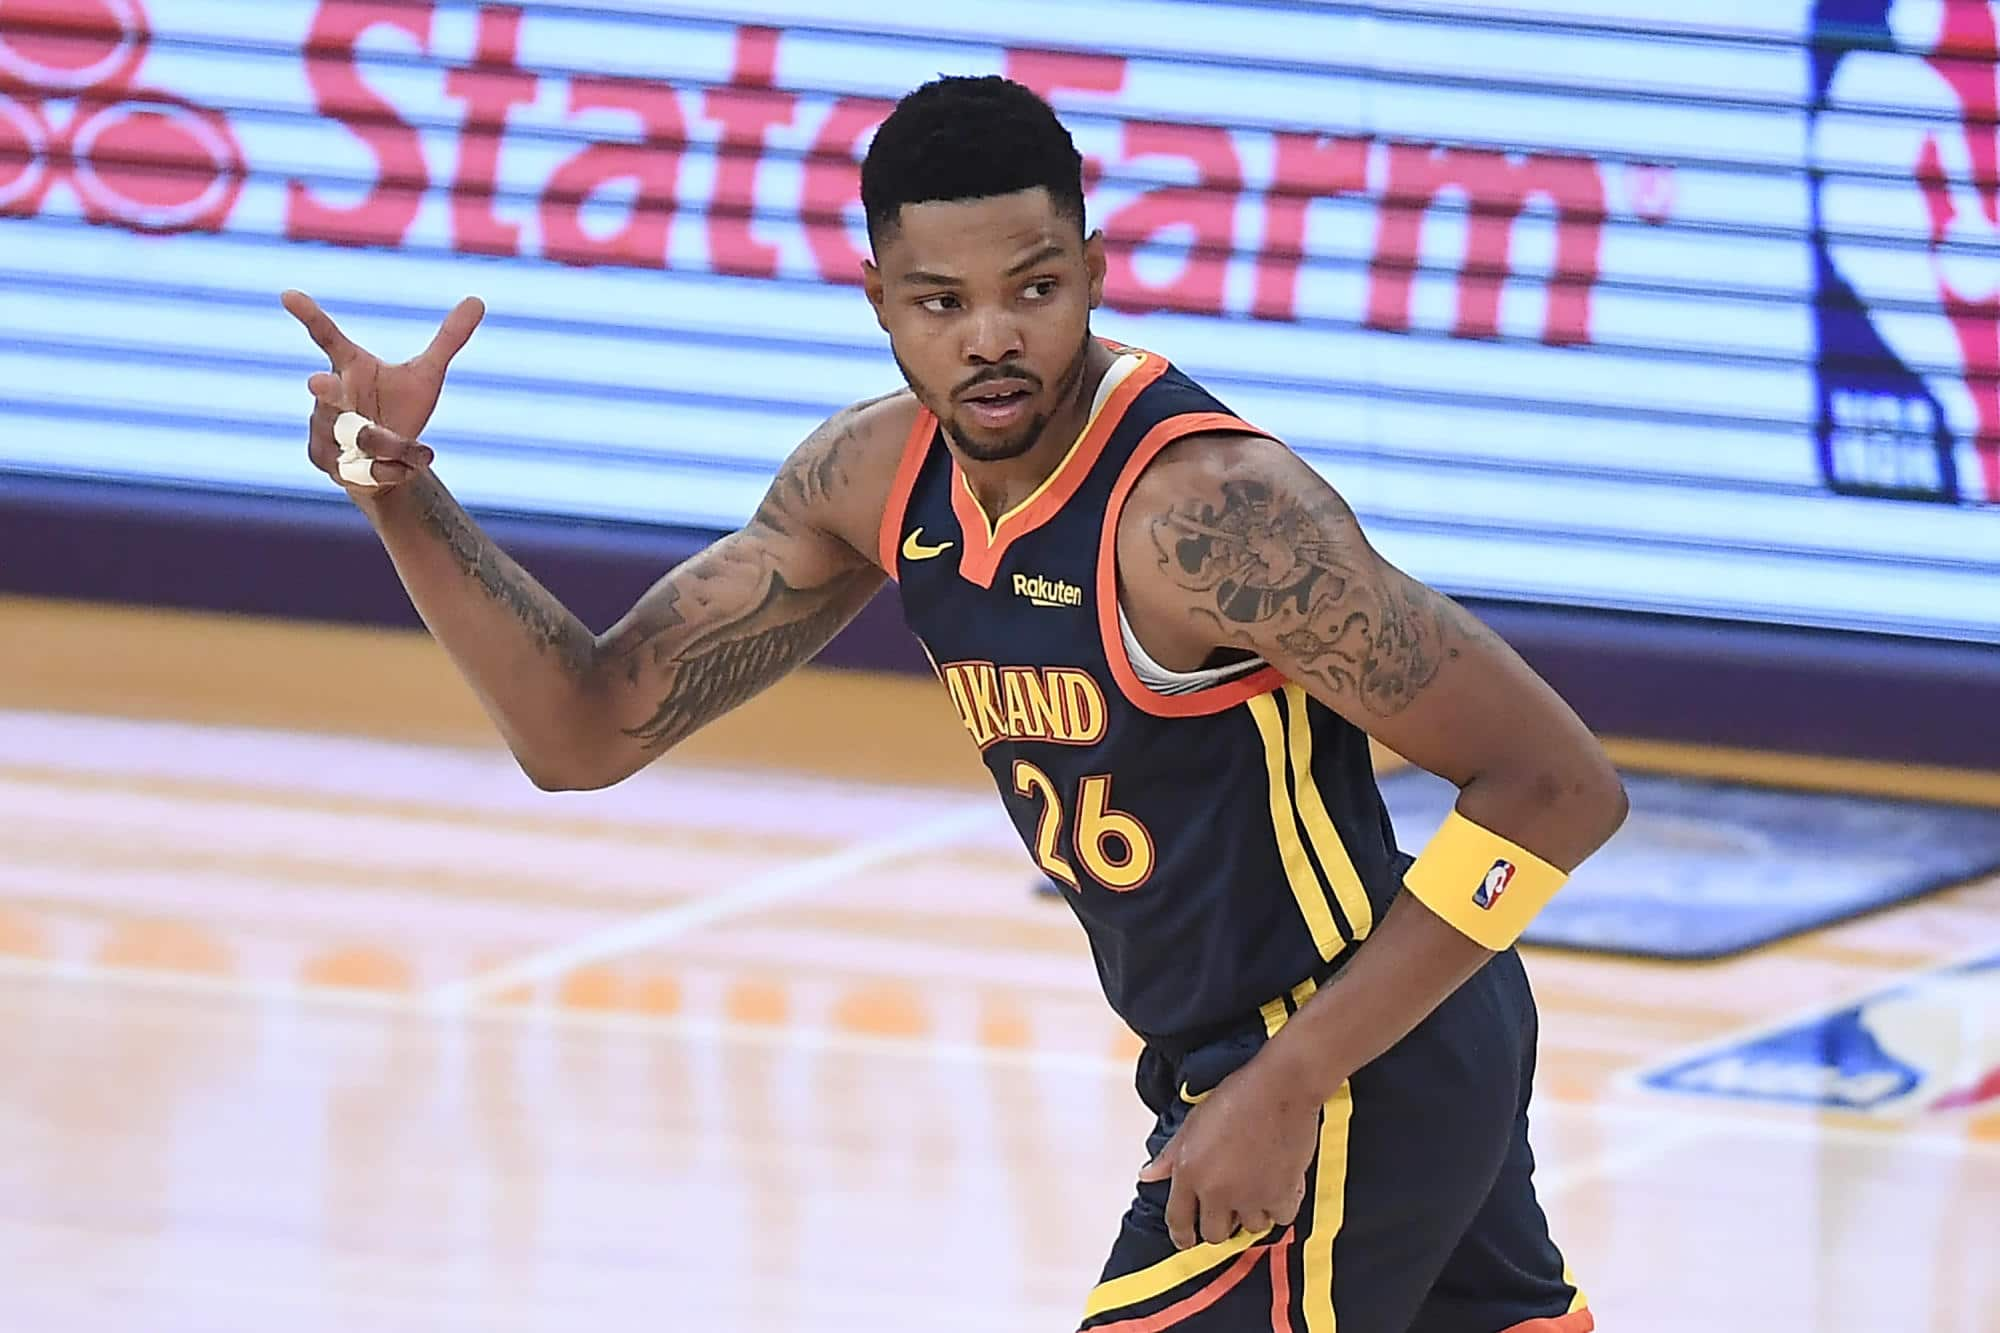 story-kent-bazemore-signing-with-lakers-on-one-year-deal.jpg